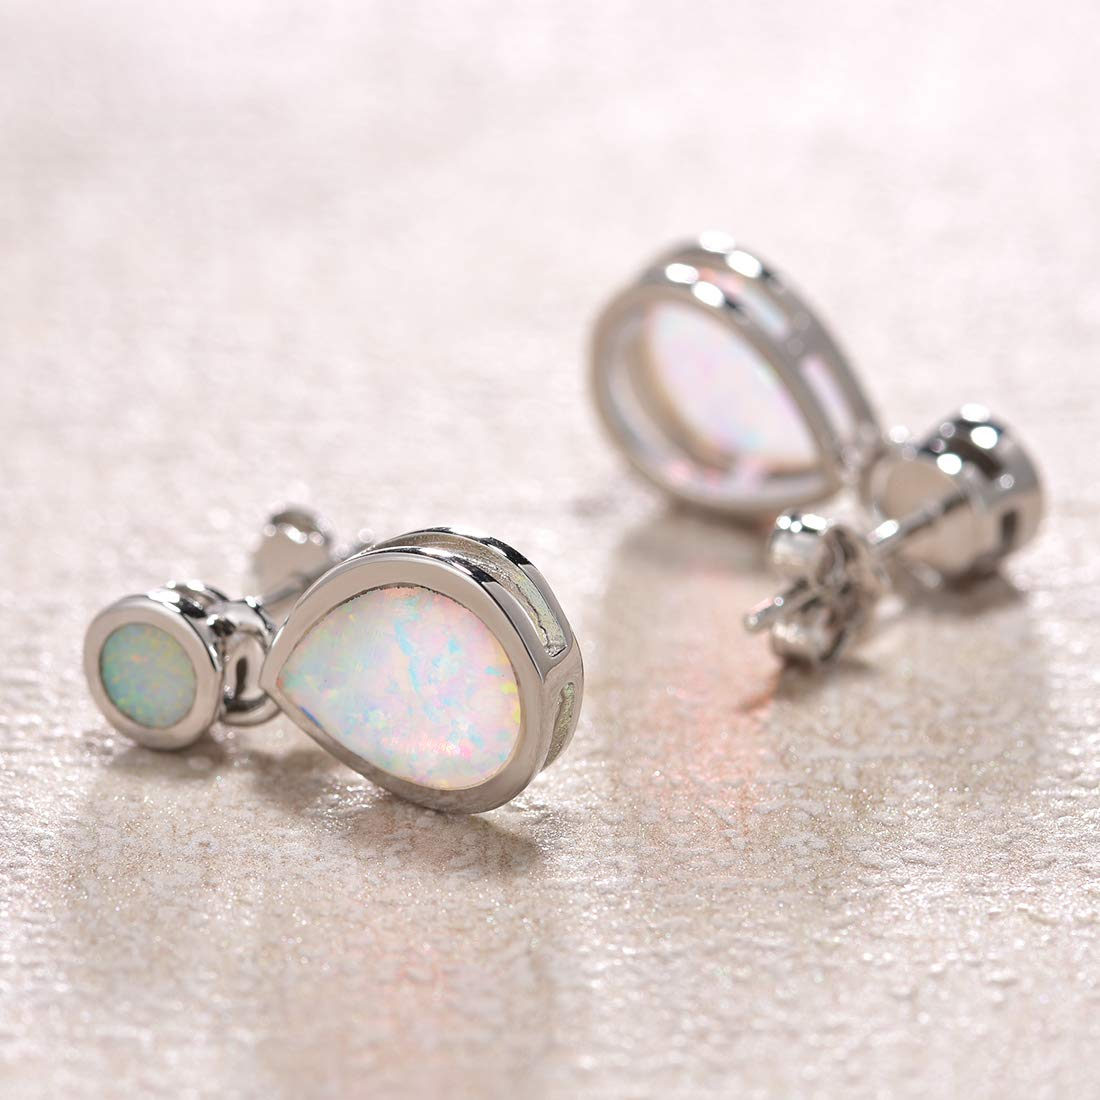 Fancime White Gold Plated 925 Sterling Silver Pear Shaped White Created Opal Dangle Drop Earrings For Women Girls